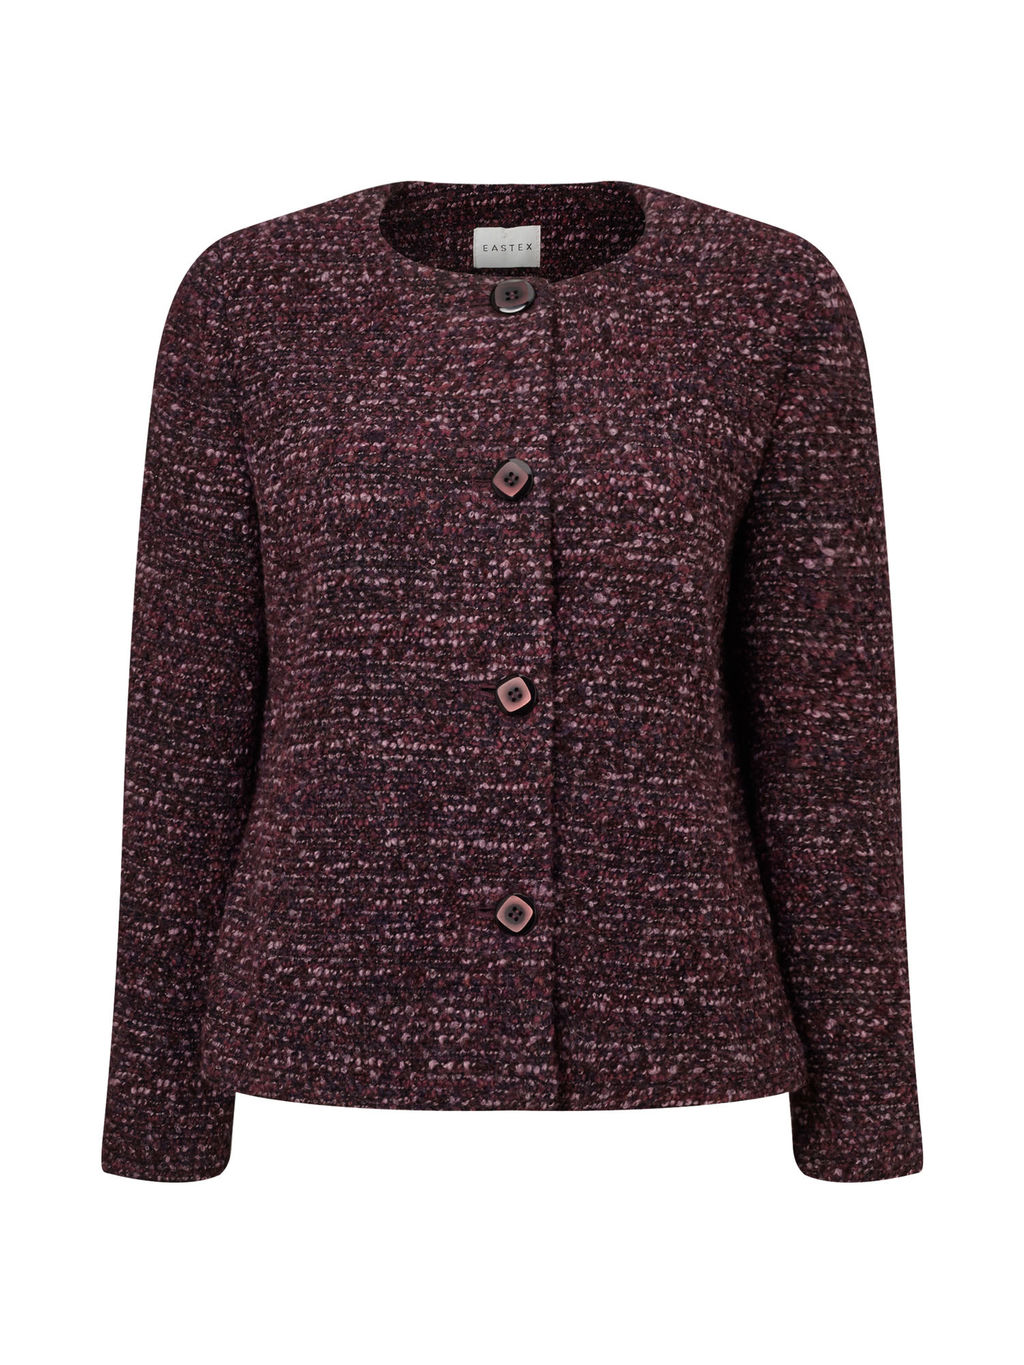 Boucle Jacket - pattern: plain; collar: round collar/collarless; style: boxy; predominant colour: burgundy; occasions: work; length: standard; fit: straight cut (boxy); fibres: acrylic - mix; sleeve length: long sleeve; sleeve style: standard; collar break: high; pattern type: fabric; texture group: woven light midweight; wardrobe: investment; season: a/w 2016